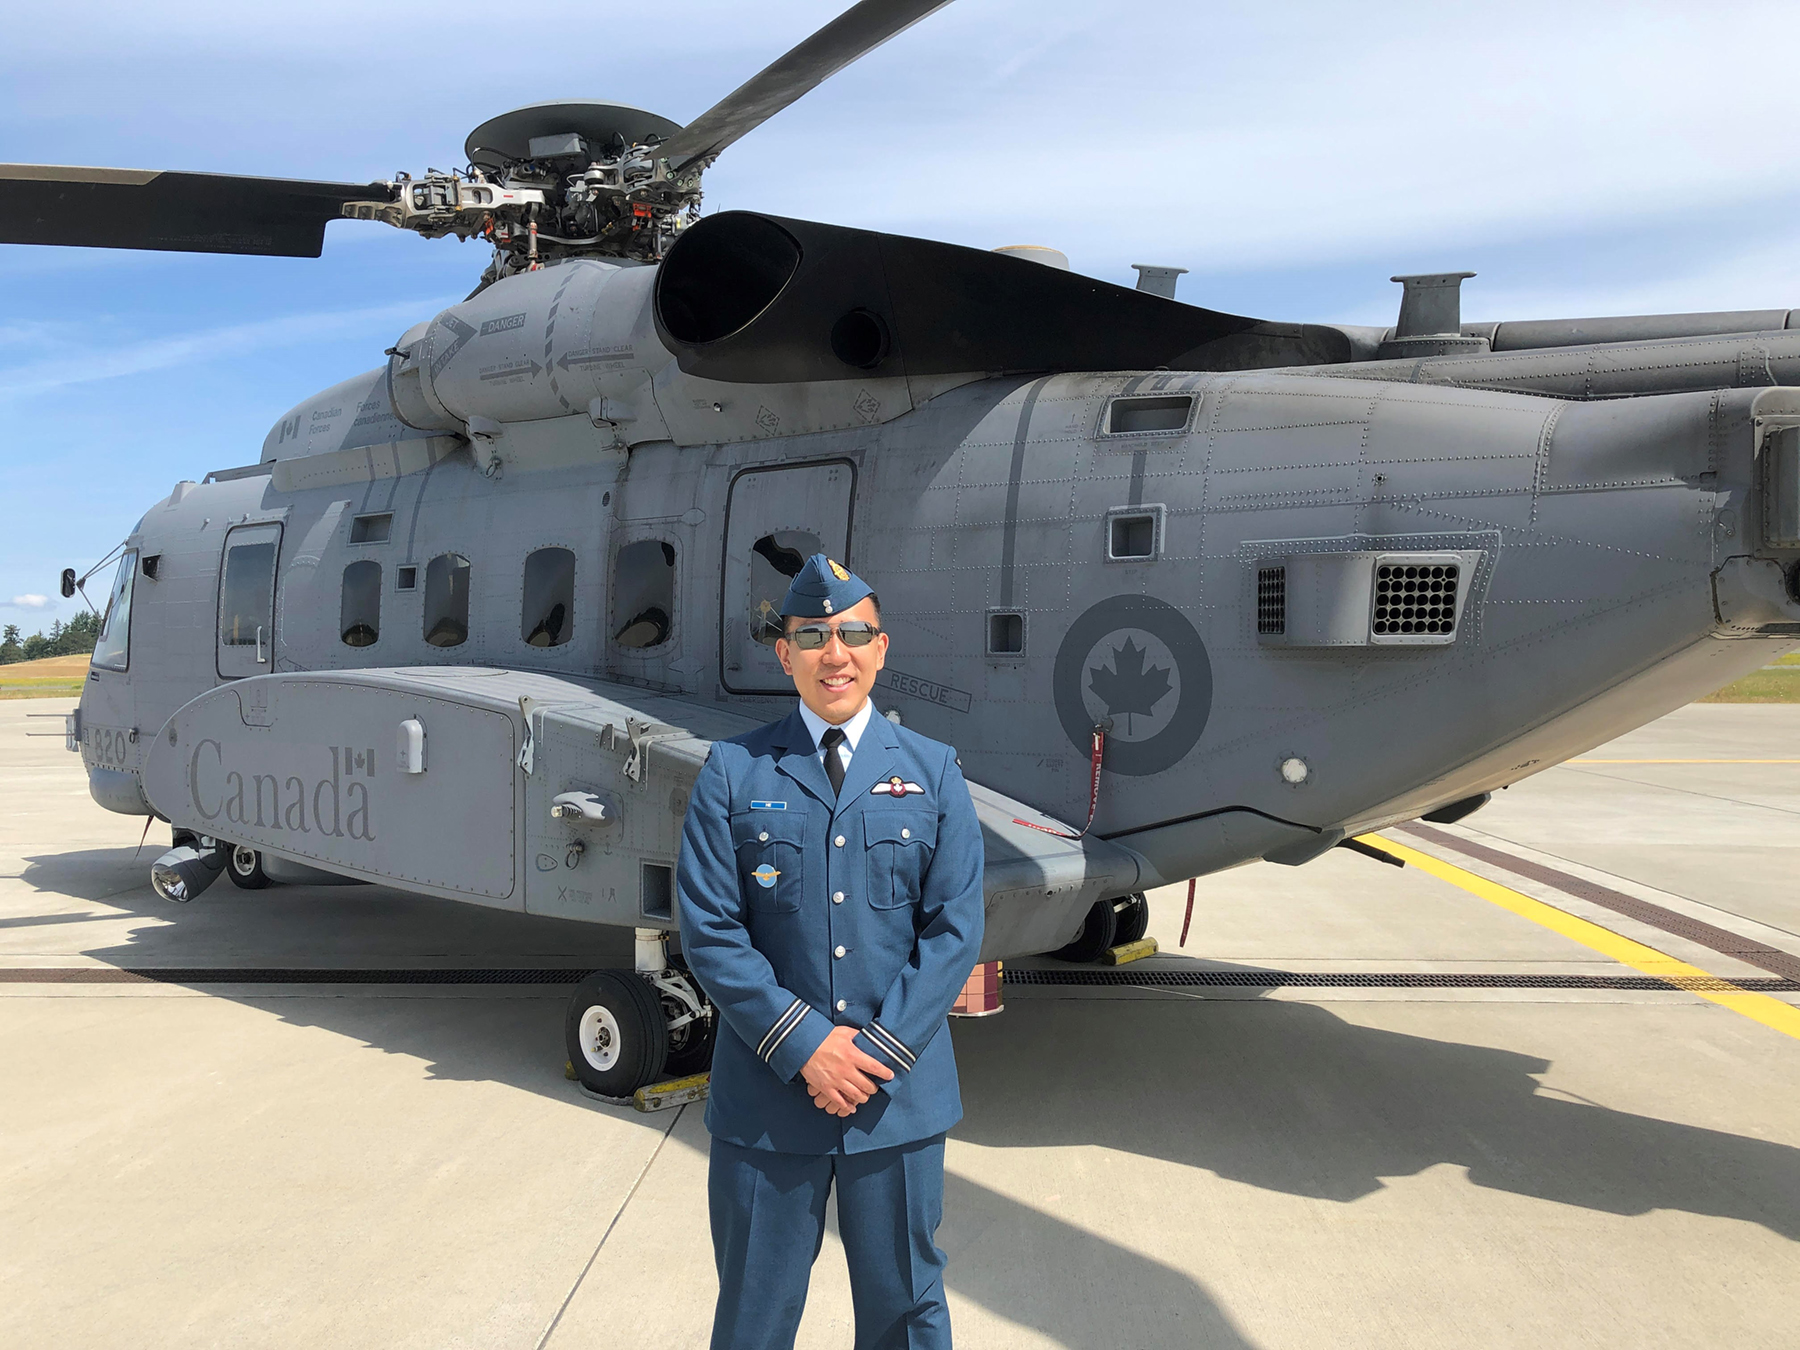 Captain David He stands with one of the RCAF's new CH-148 Cyclone helicopters. PHOTO: Submitted